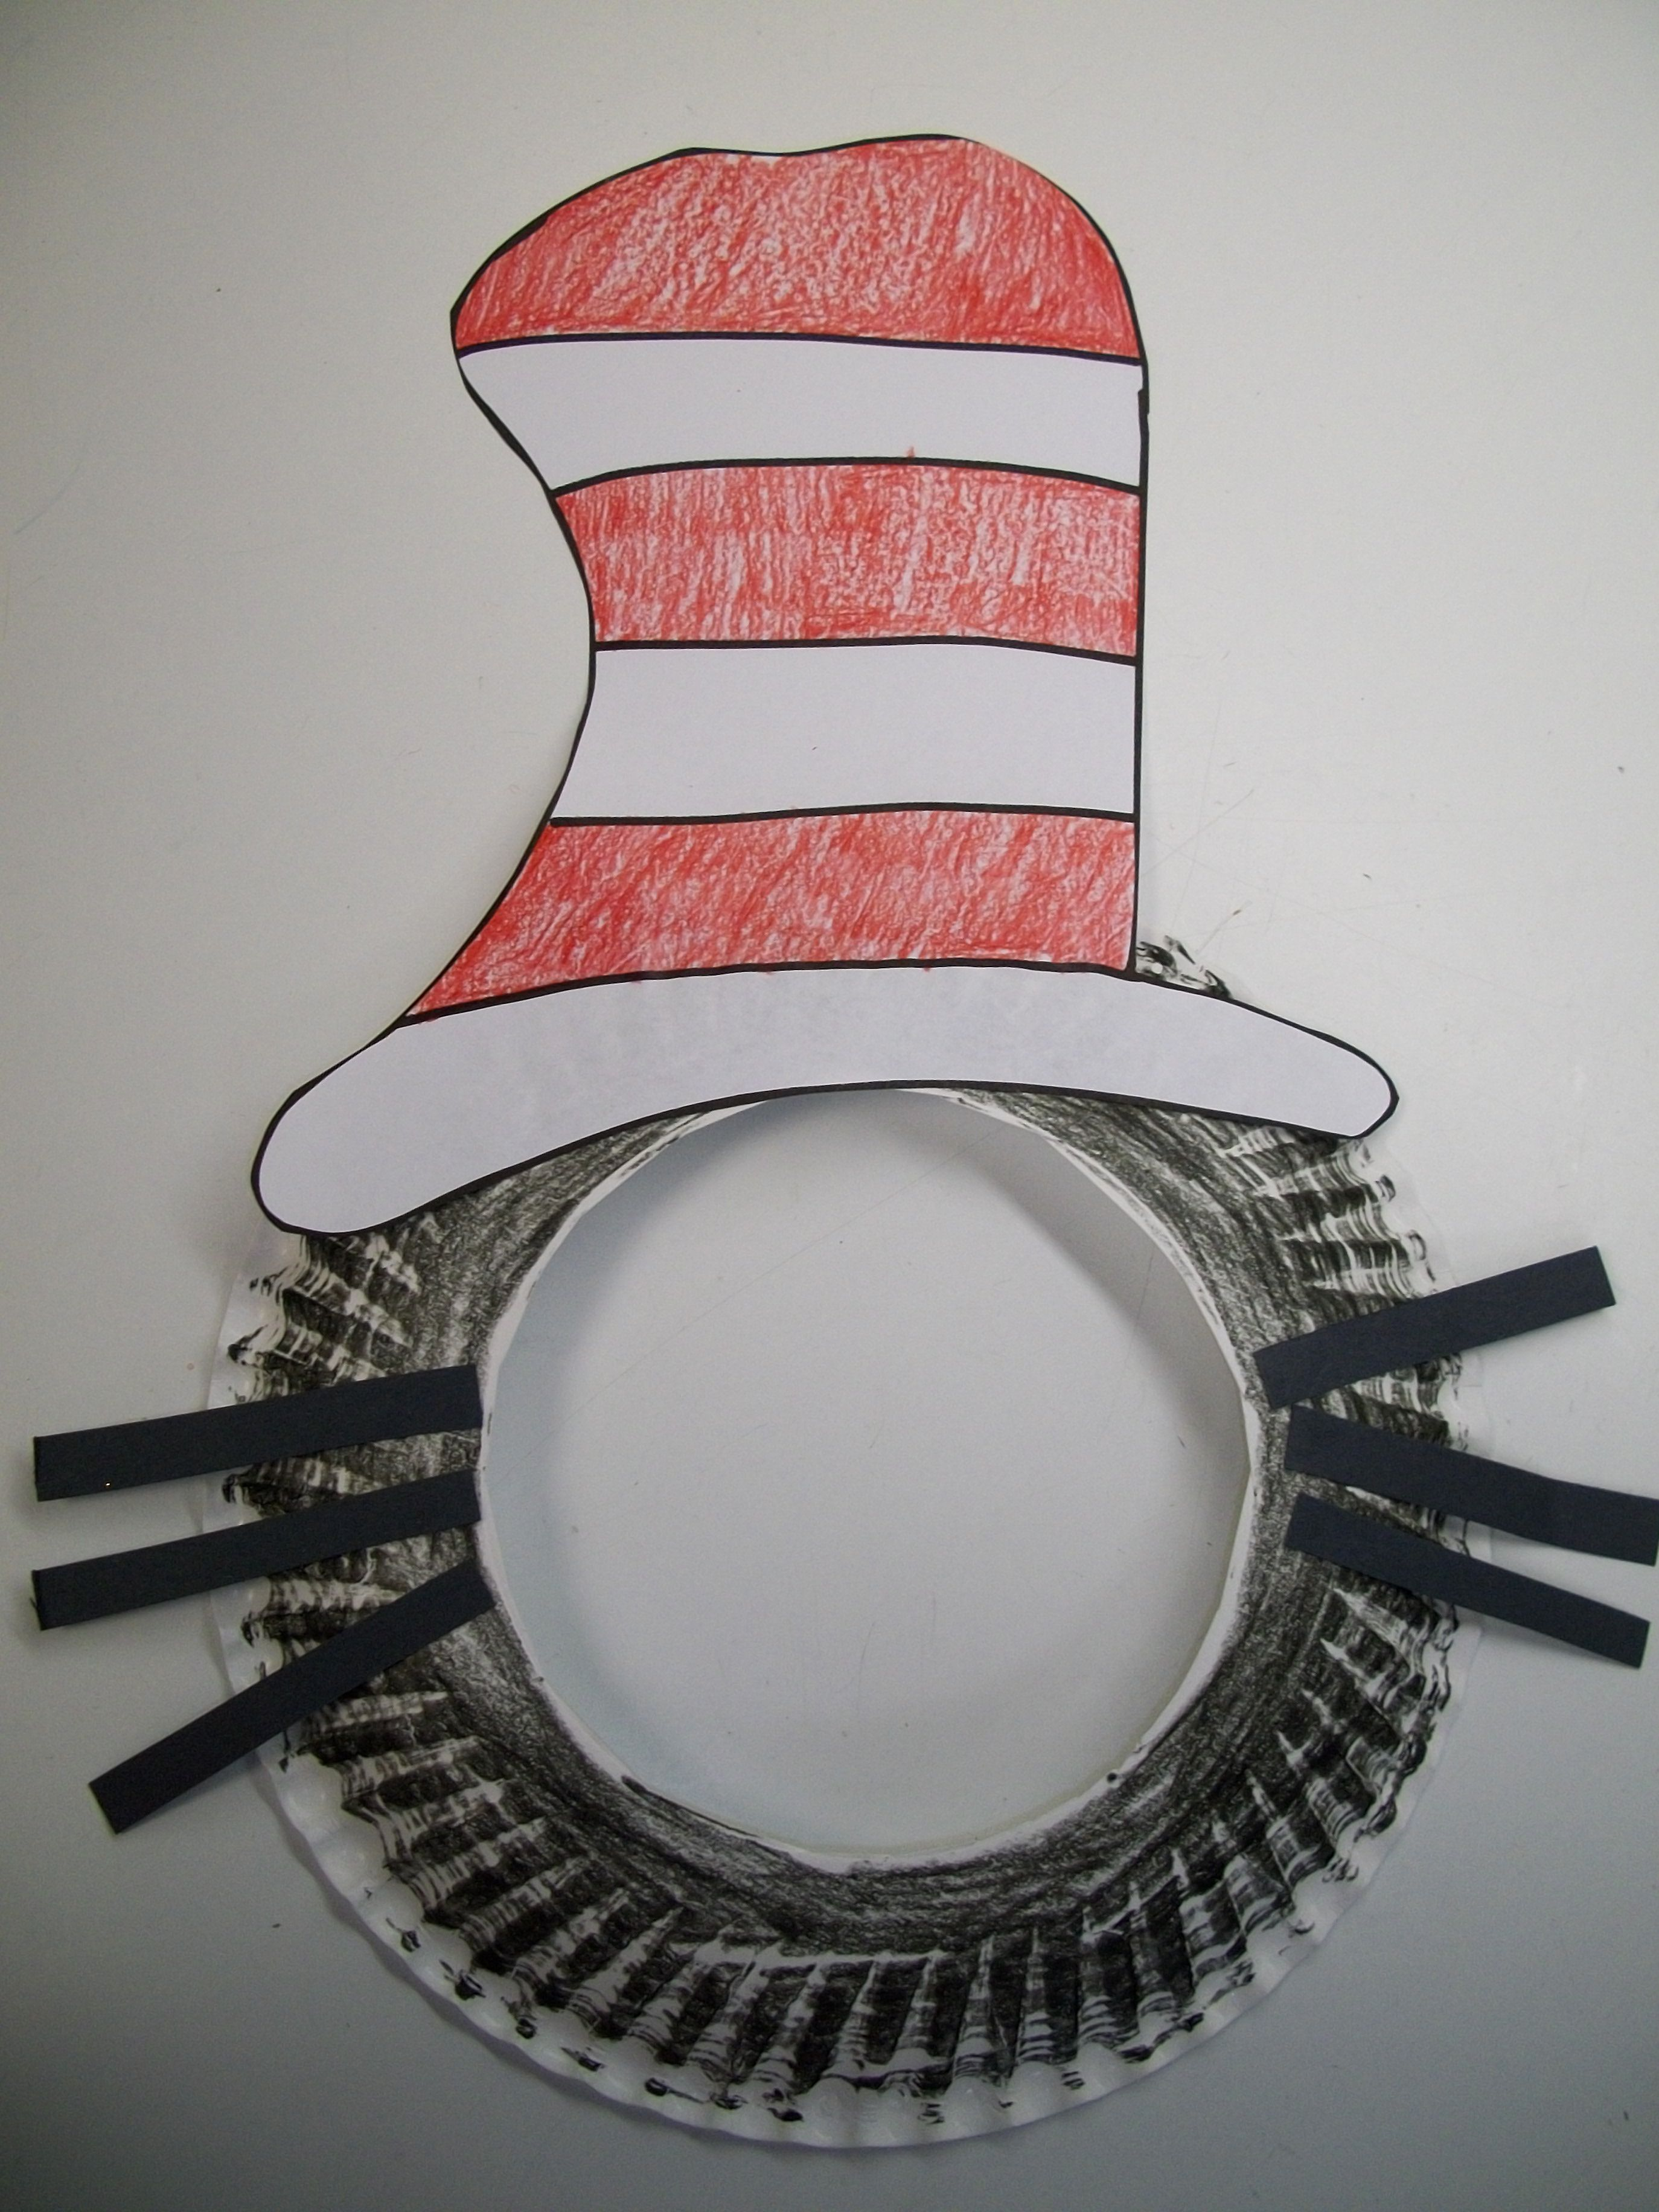 Easy dr seuss crafts - Cute Idea To Make And Have The Kids Take Pictures With This For Dr Seuss